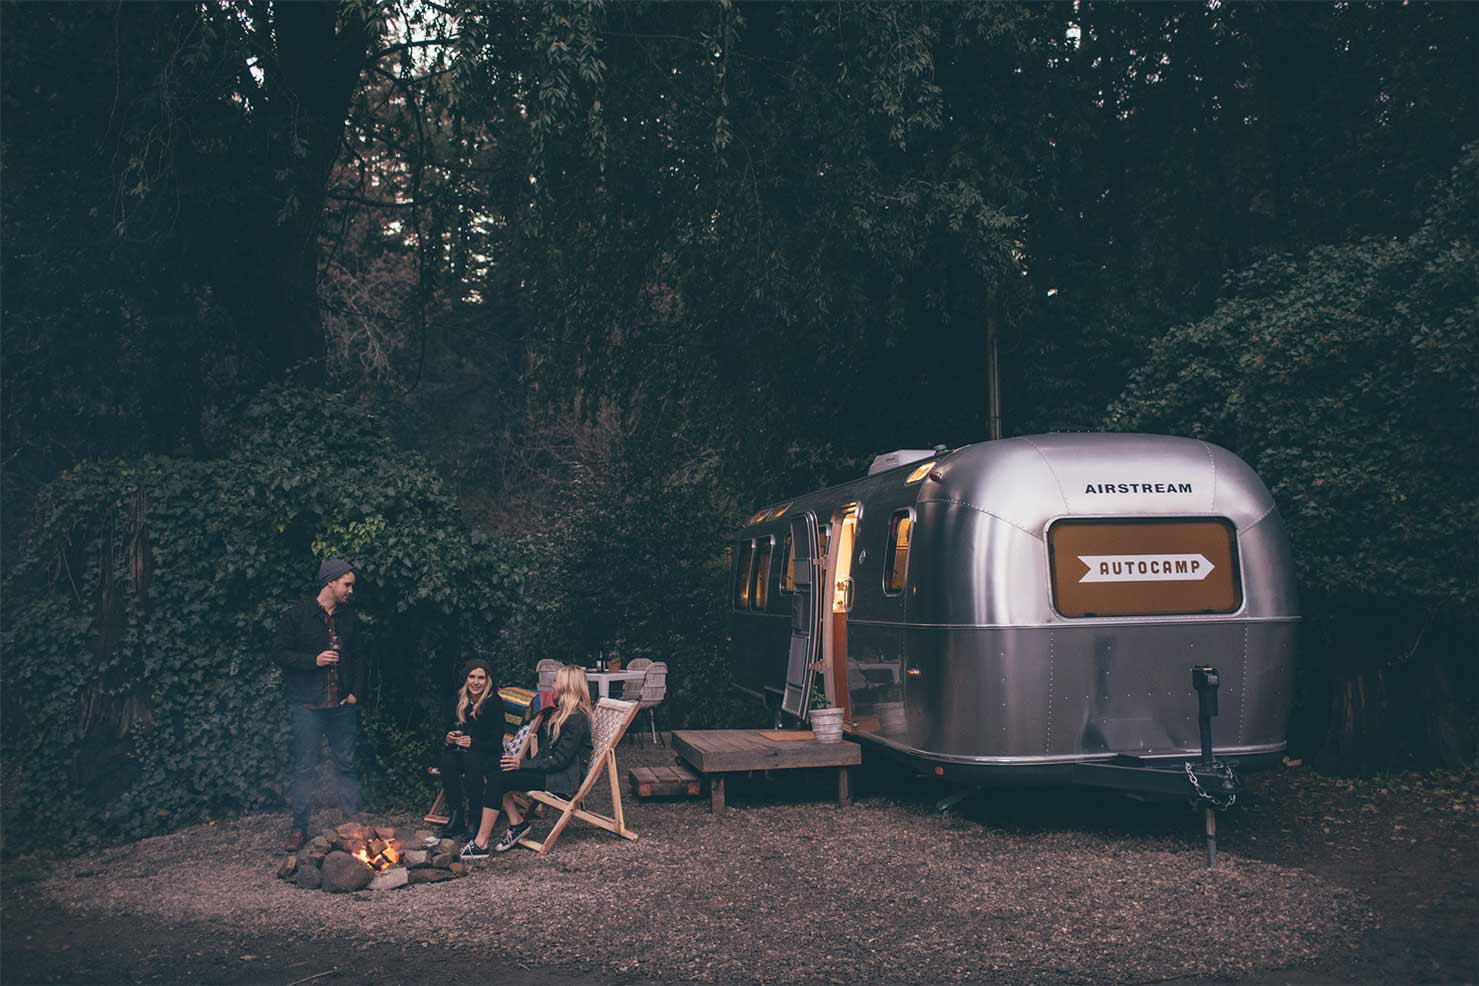 AutoCamp at Russian River in Sonoma County